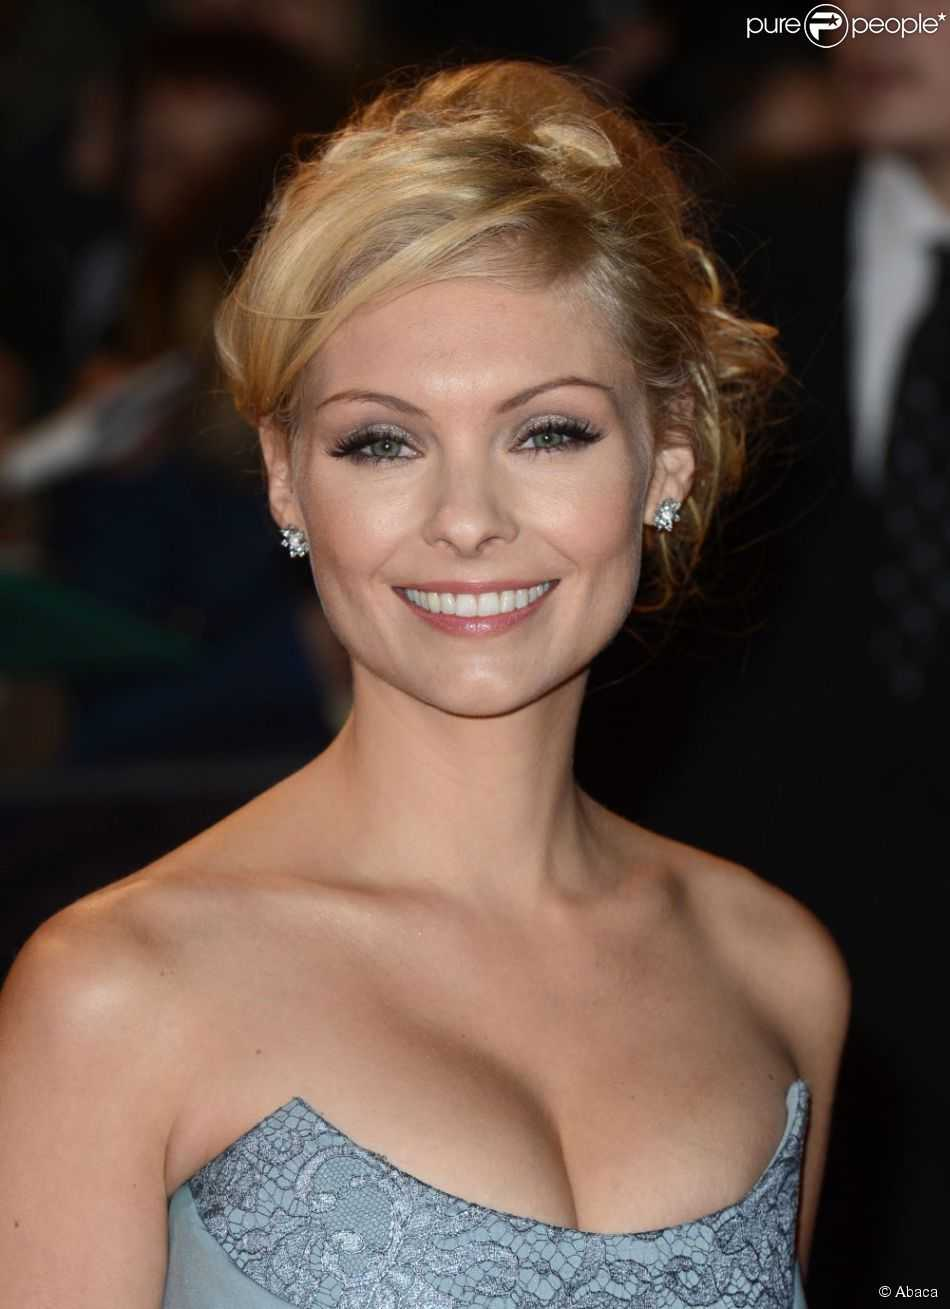 MyAnna Buring cleavage pic